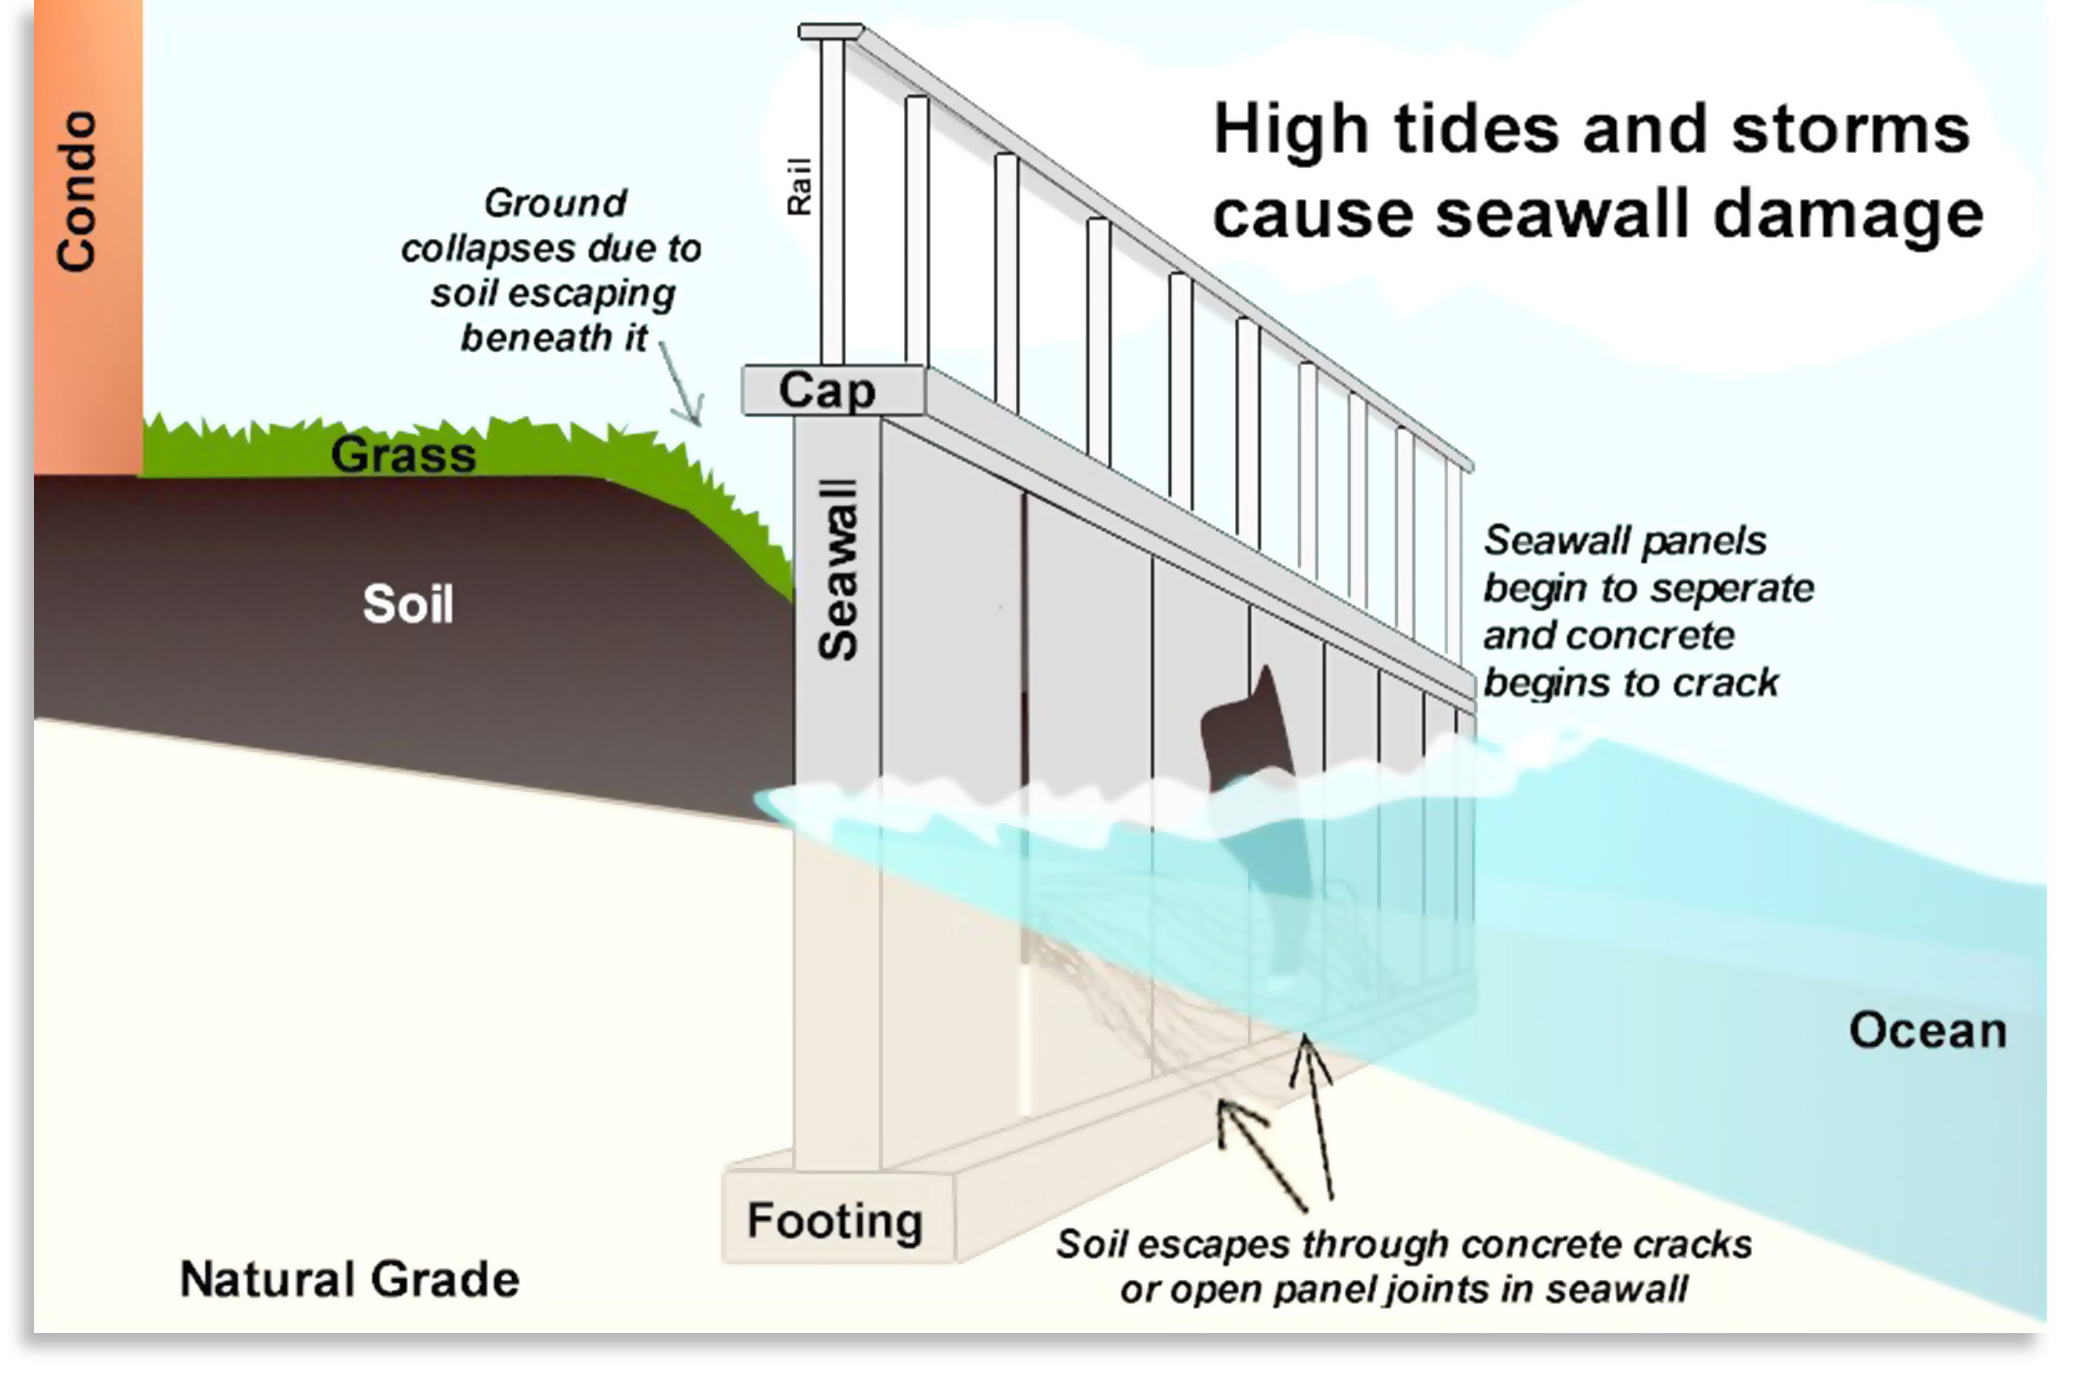 06-seawall-premier-environmental-solutions-florida-seawall-foundations.jpg